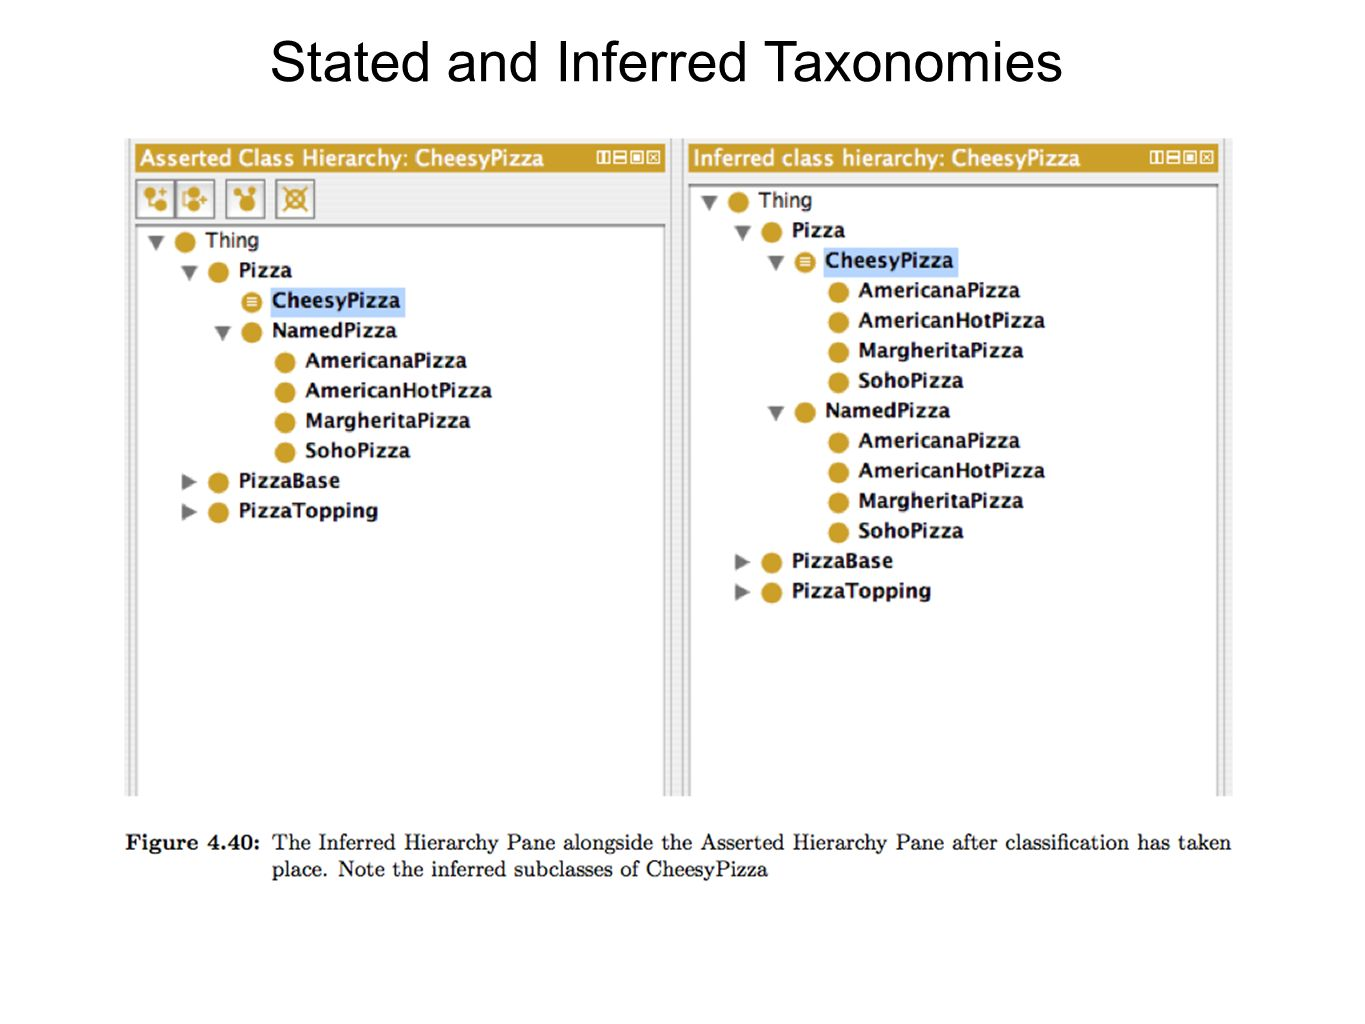 Stated and Inferred Taxonomies